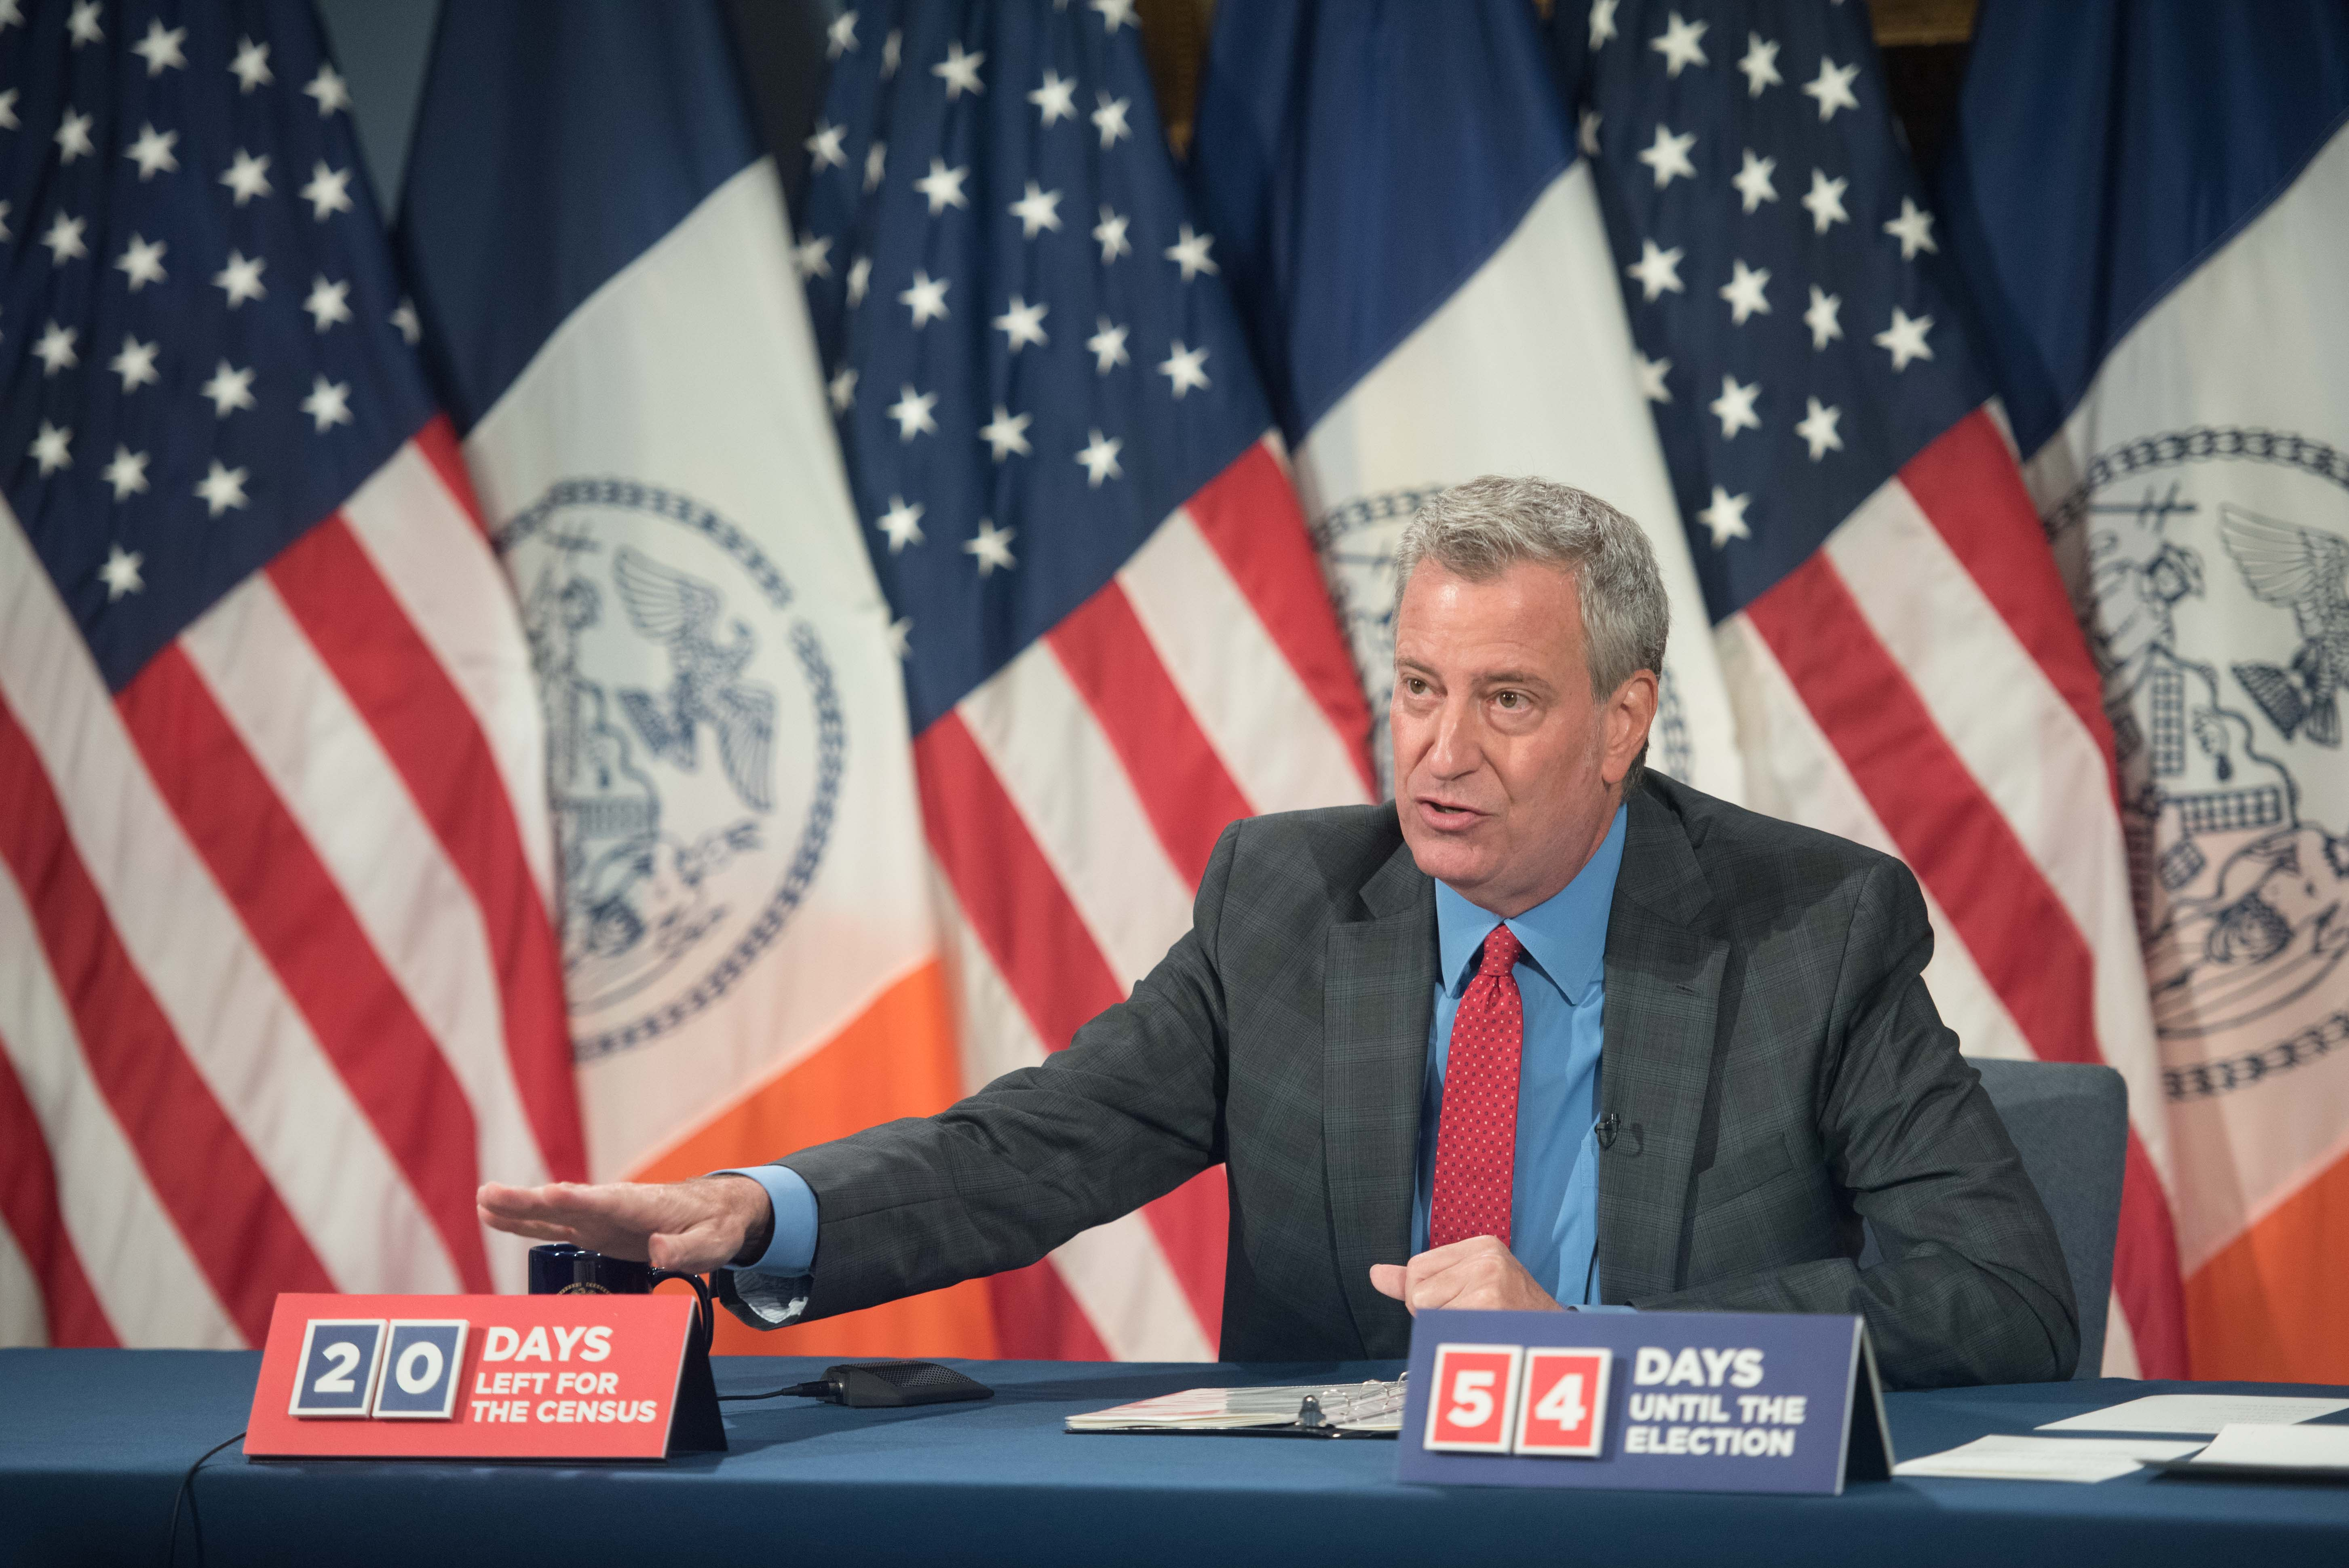 NYC Mayor Warns of New CDC Report that Links Increase in COVID-19 Cases to Eating Out